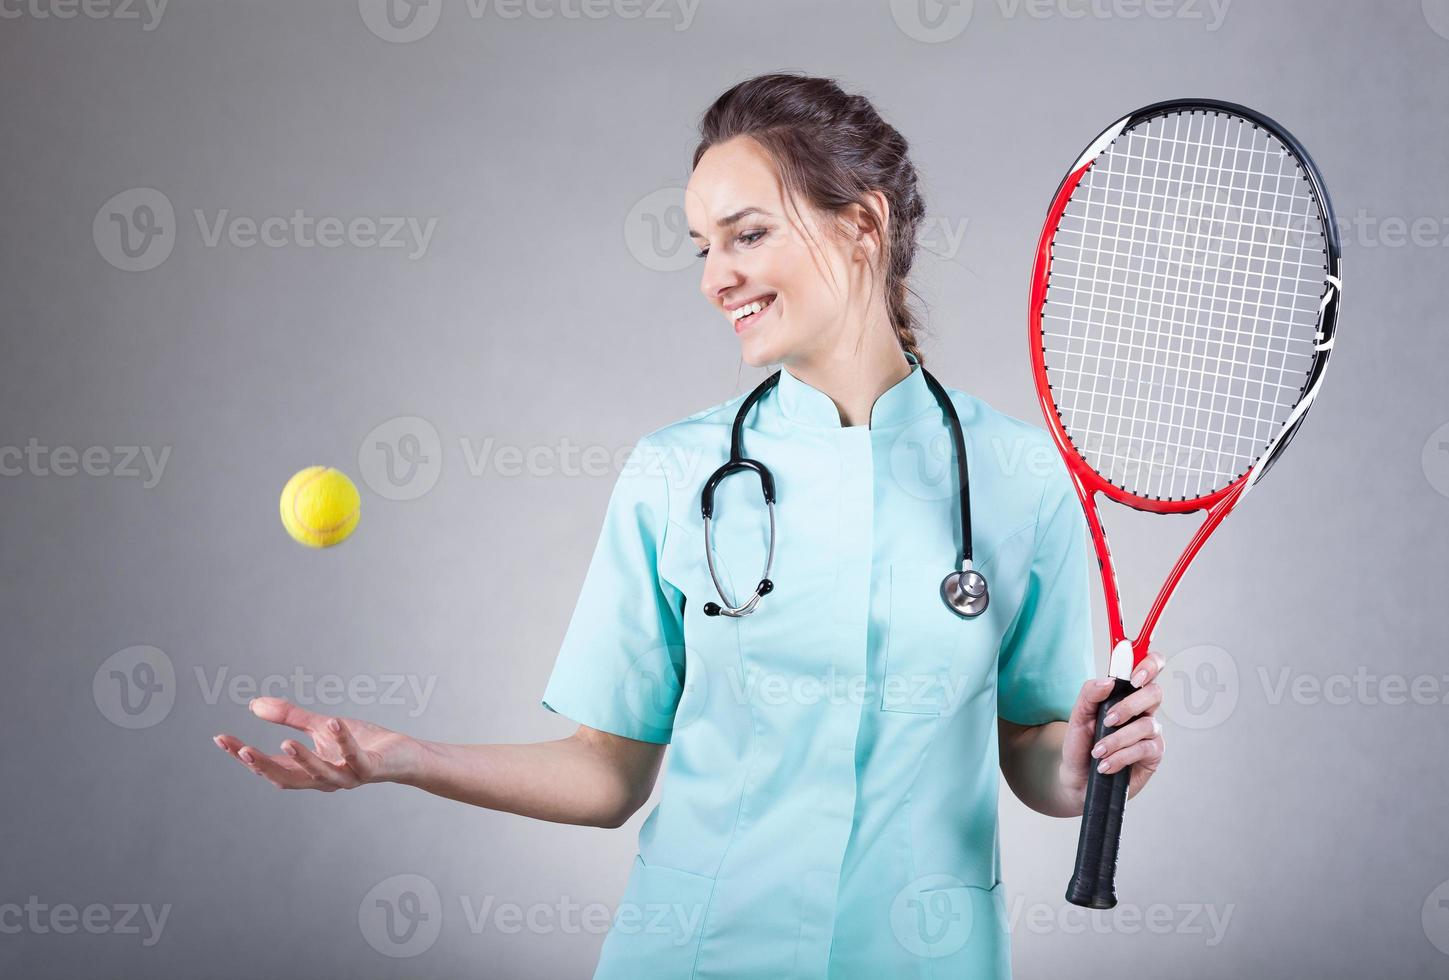 Female doctor with a tennis racket photo